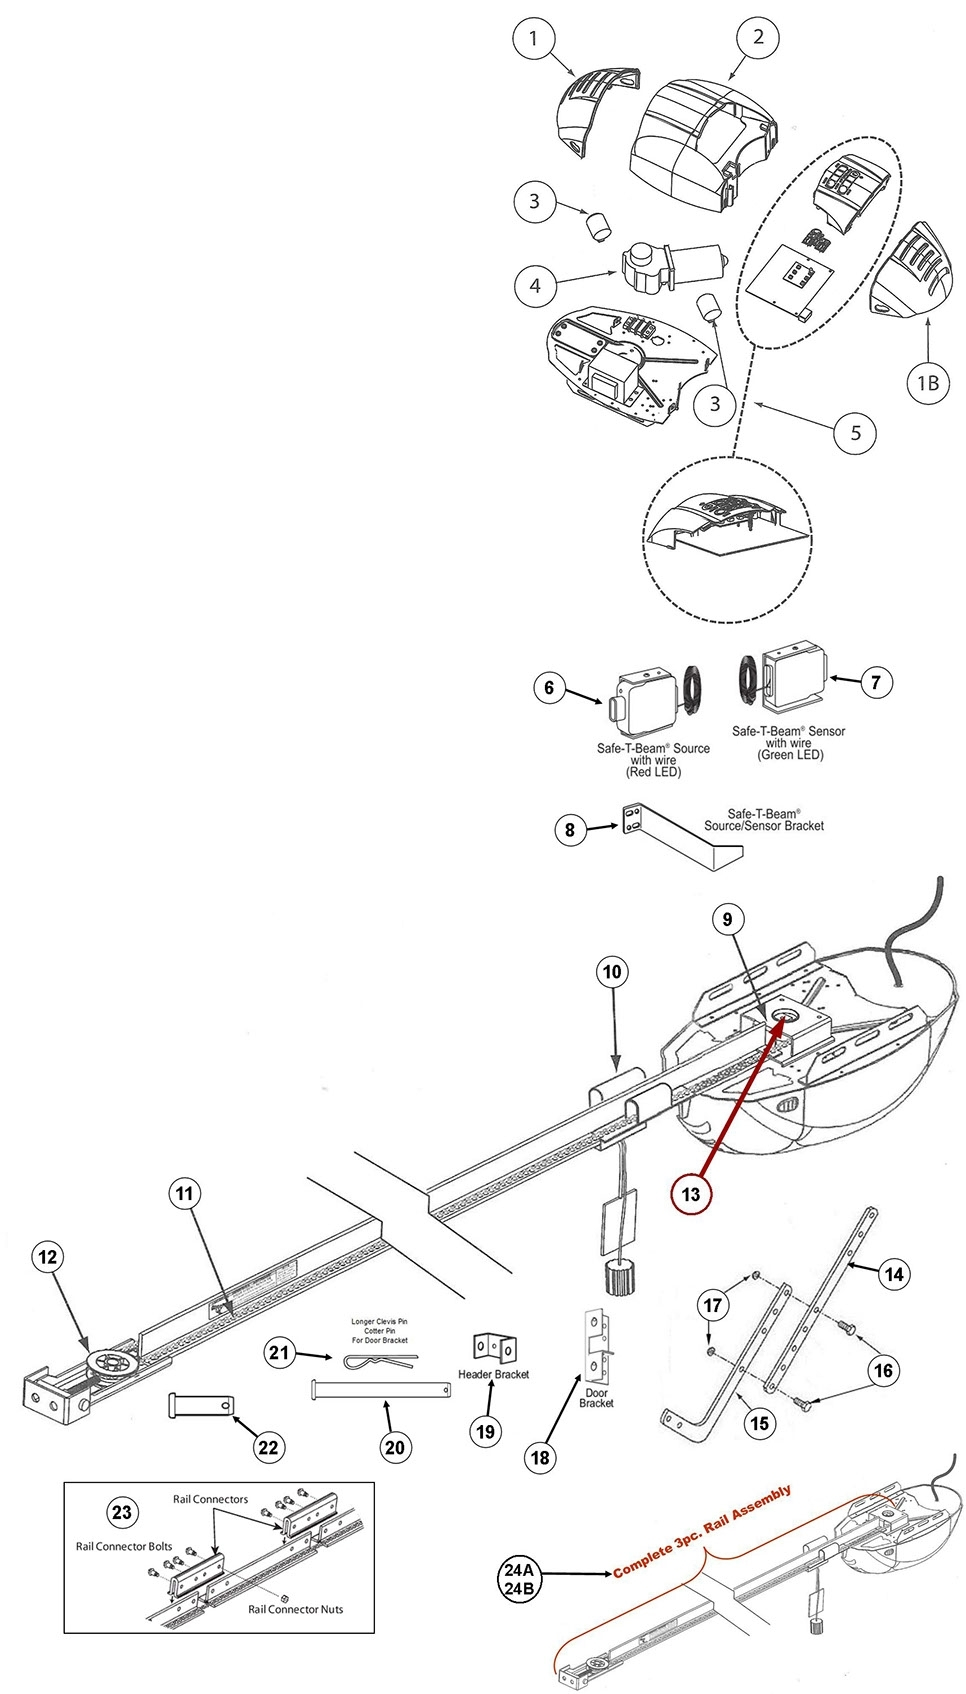 Genie 1022-1024-1042 Parts Schematic with Genie Garage Door Opener Parts Diagram